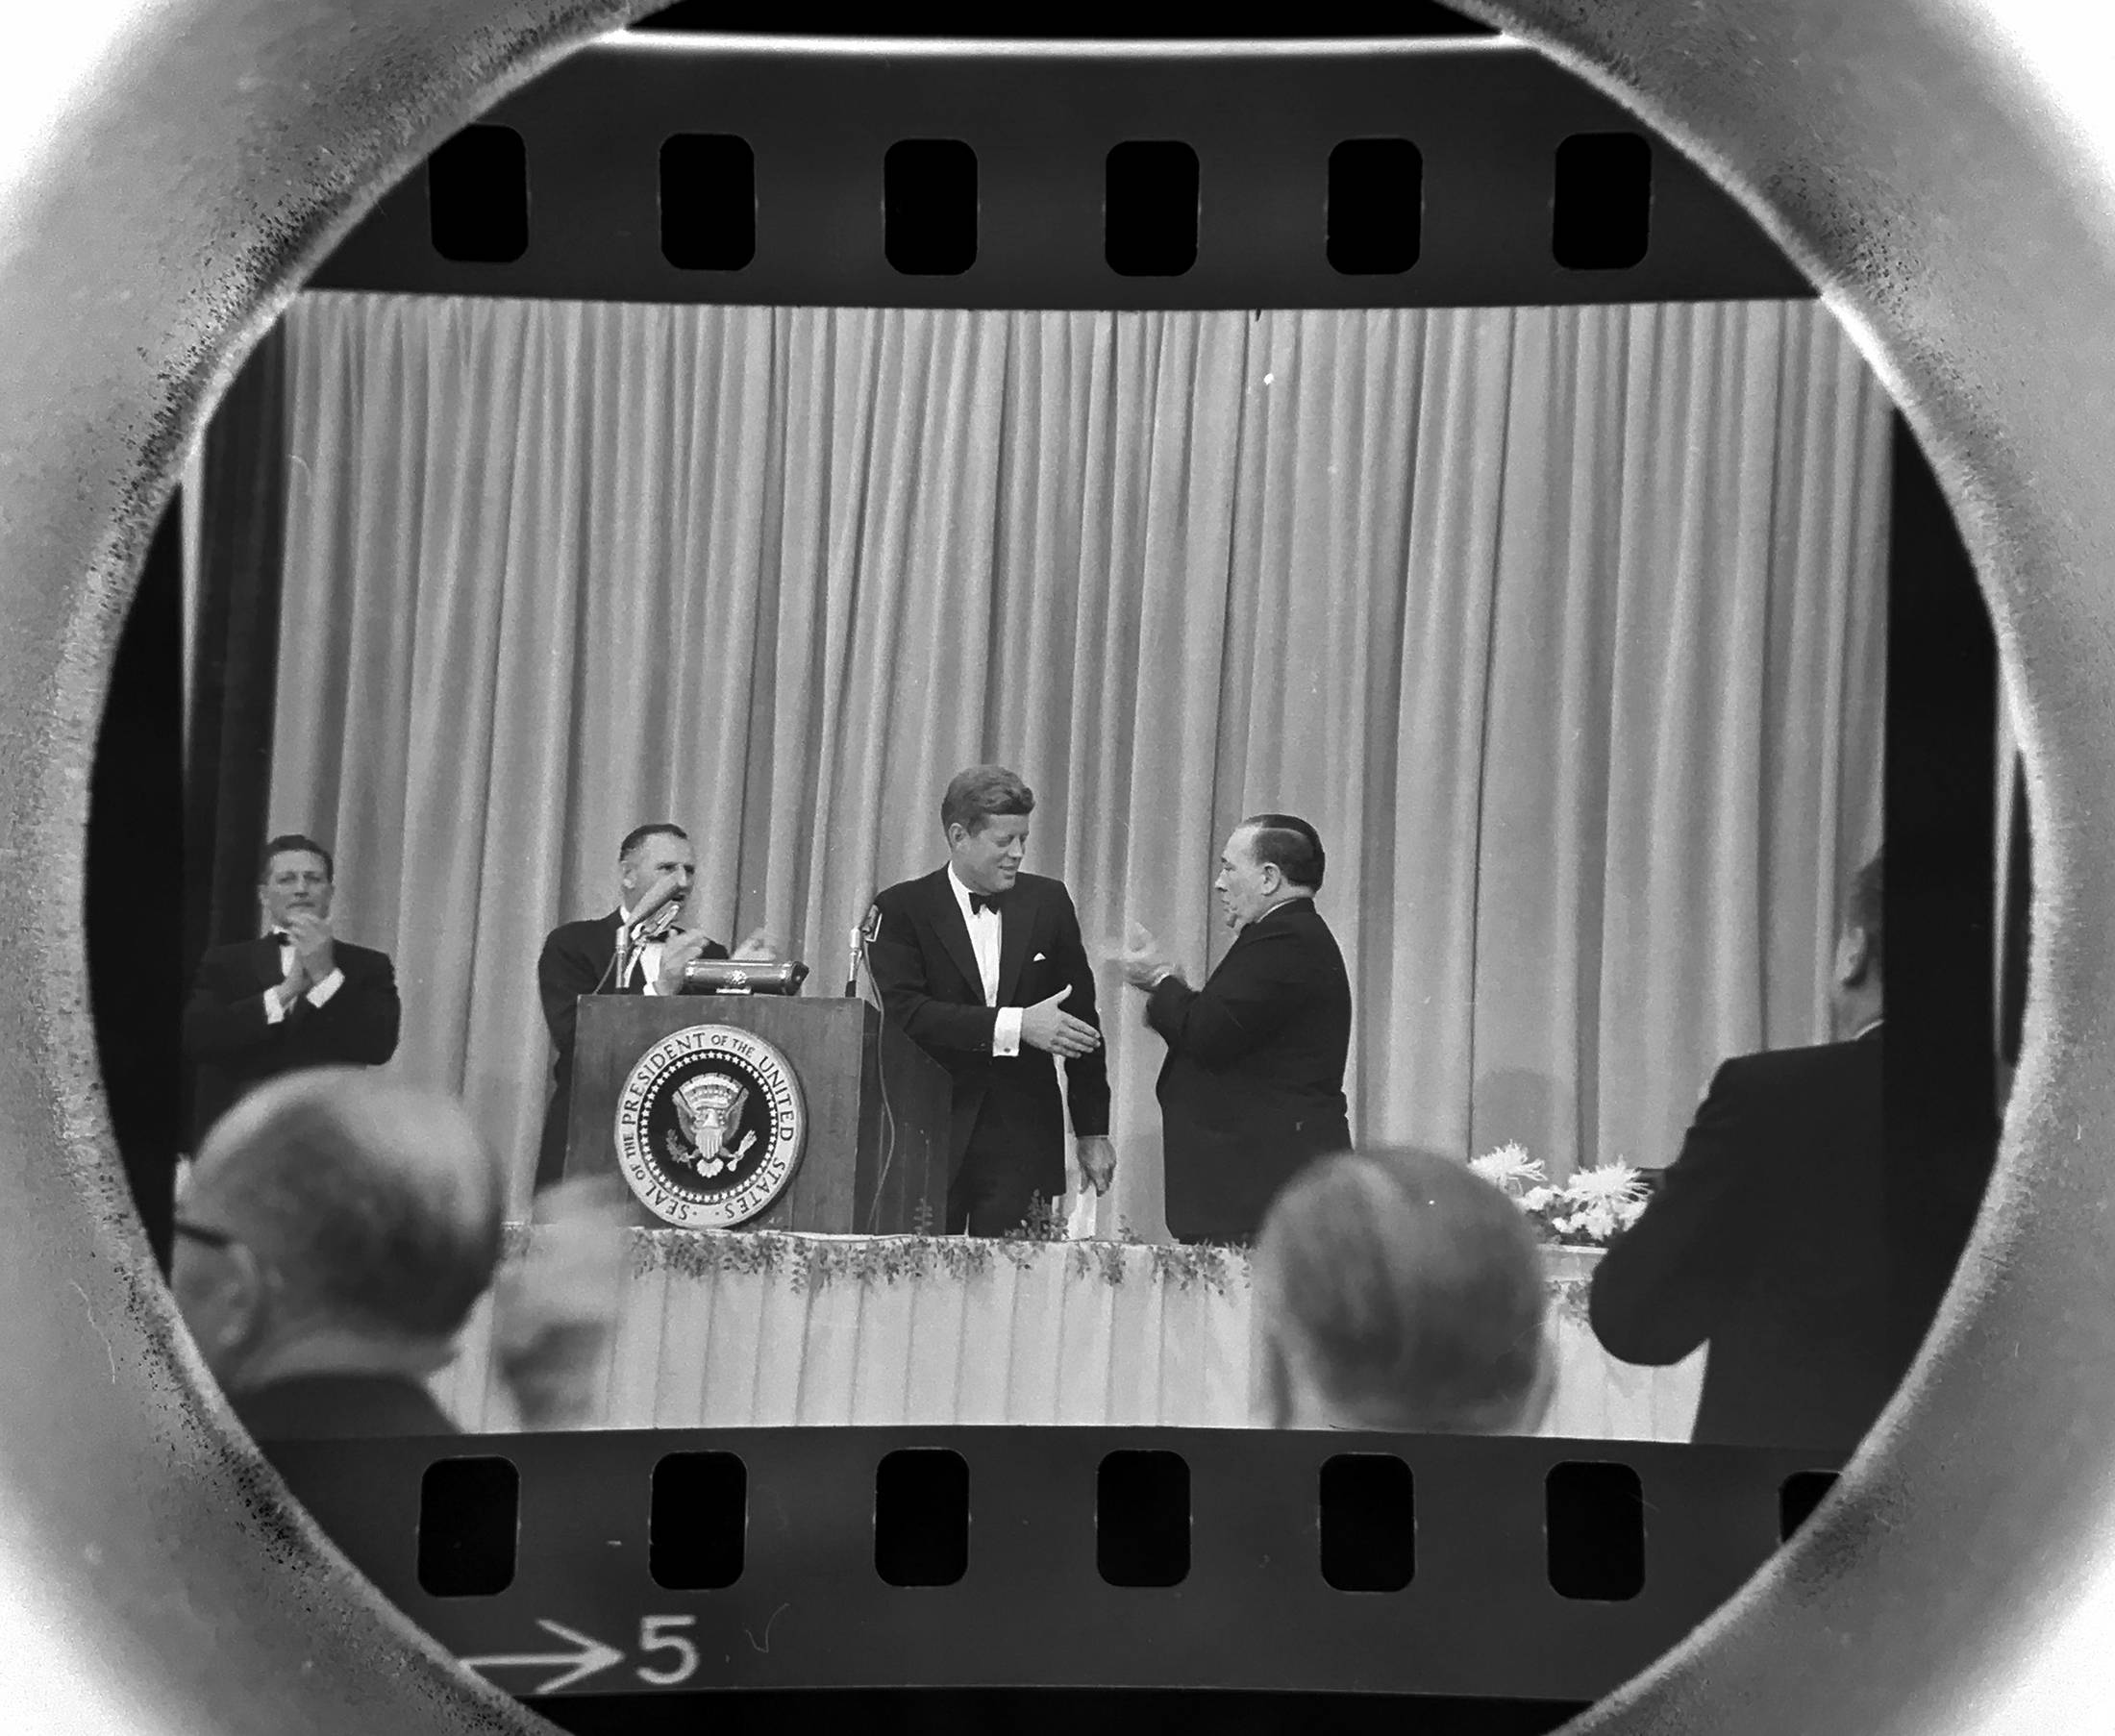 The Daily Herald Archives, Larry Cameron photo: In October of 1962, President John F. Kennedy in introduced by Chicago Mayor Richard Daley prior to speaking at McCormick Place in Chicago. Kennedy was lending his support to Rep. Sidney Yates in his run for the U.S. Senate.